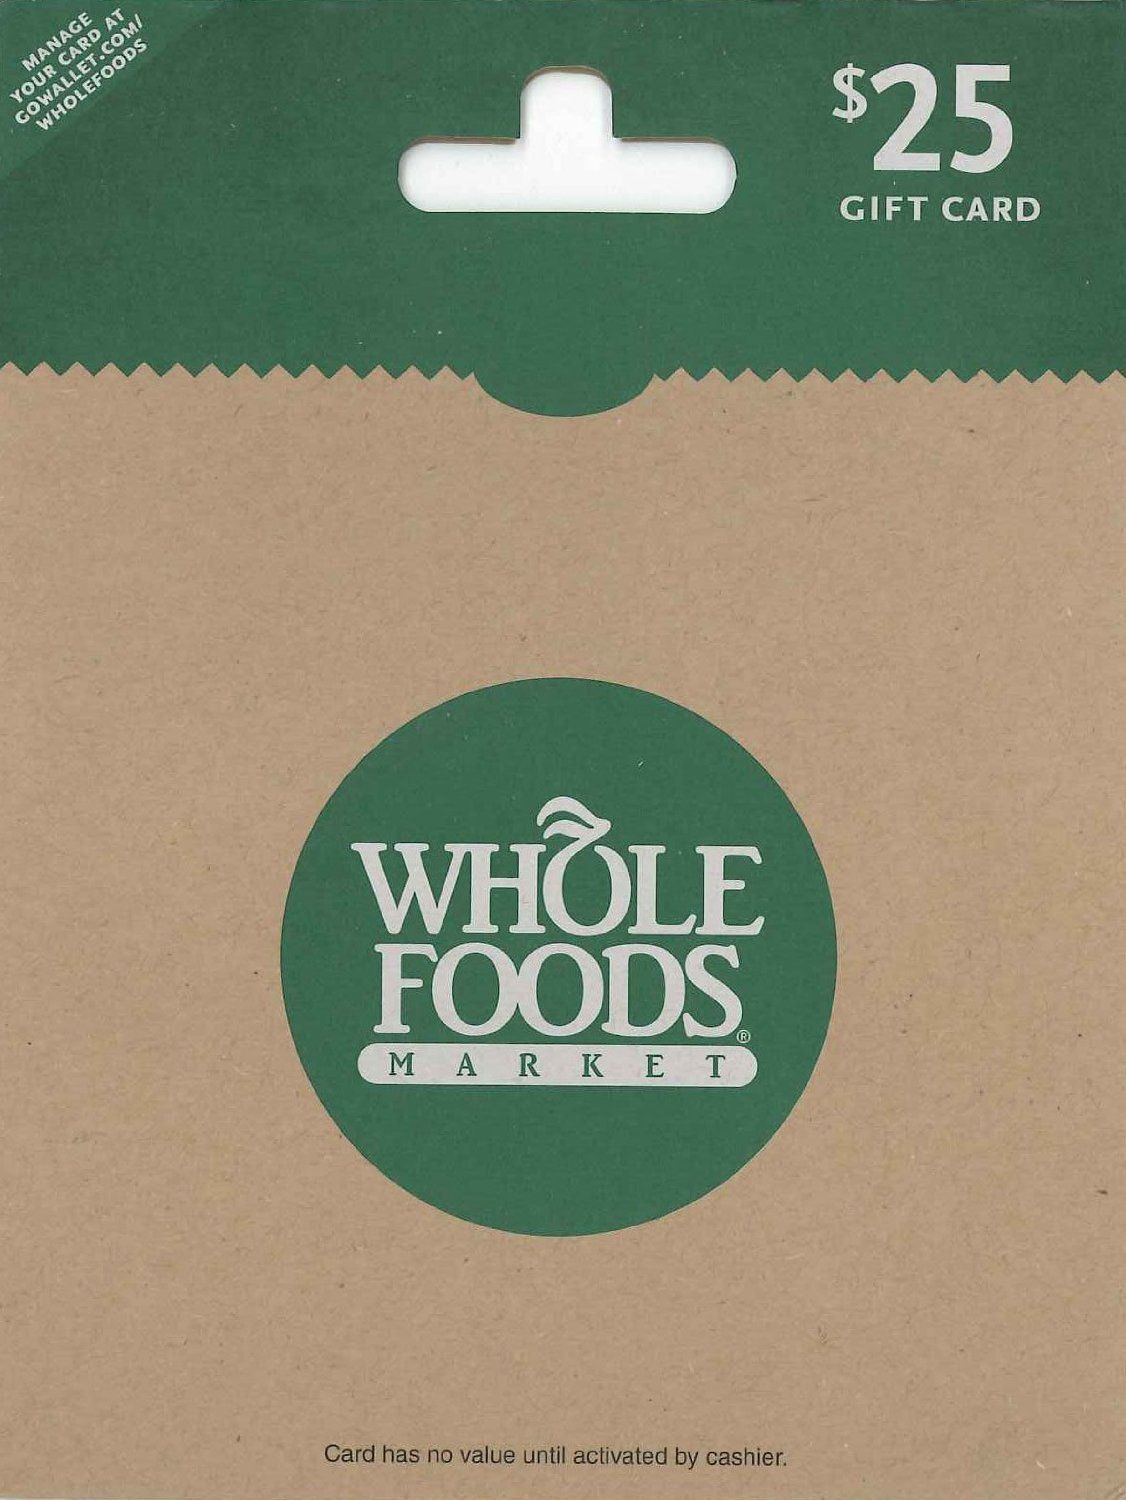 Pin By Lovelli Fuad Content Design On Giveaway Food Gift Cards Whole Foods Gift Card Whole Foods Market